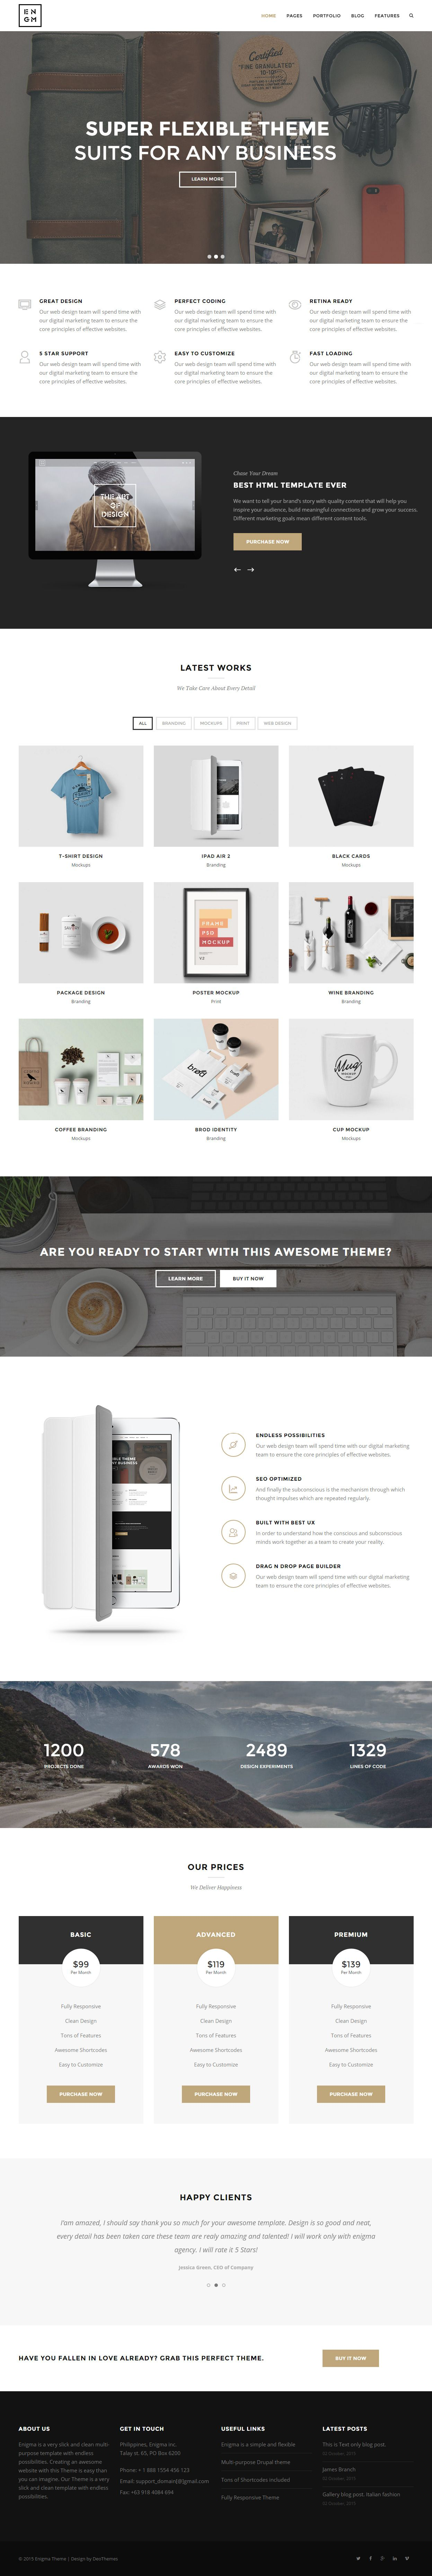 Google themes video - Enigma Is Premium Responsive Retina Theme Bootstrap One Page Video Background Google Map Test Free Demo At